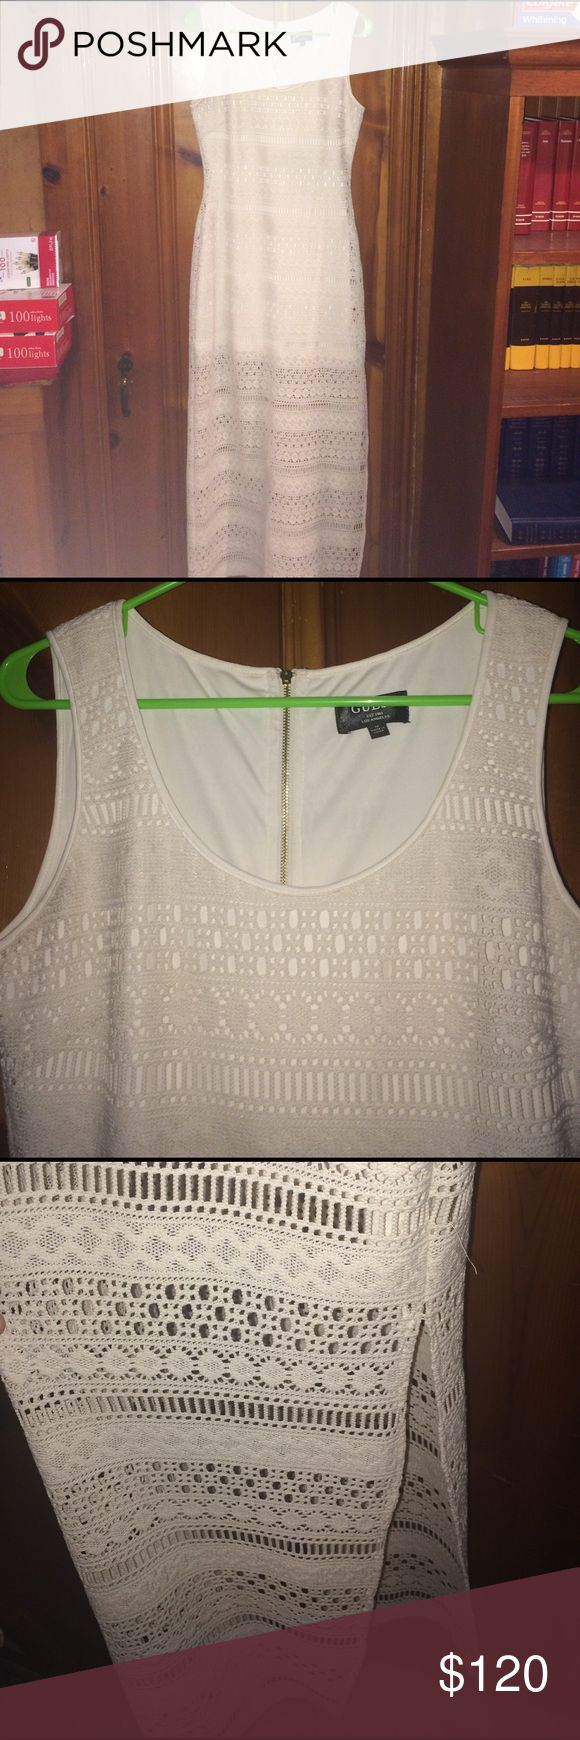 Guess lace maxi dress Made in Los Angles, guess cream colored laced maxi dress. Used but great condition Guess Dresses Maxi